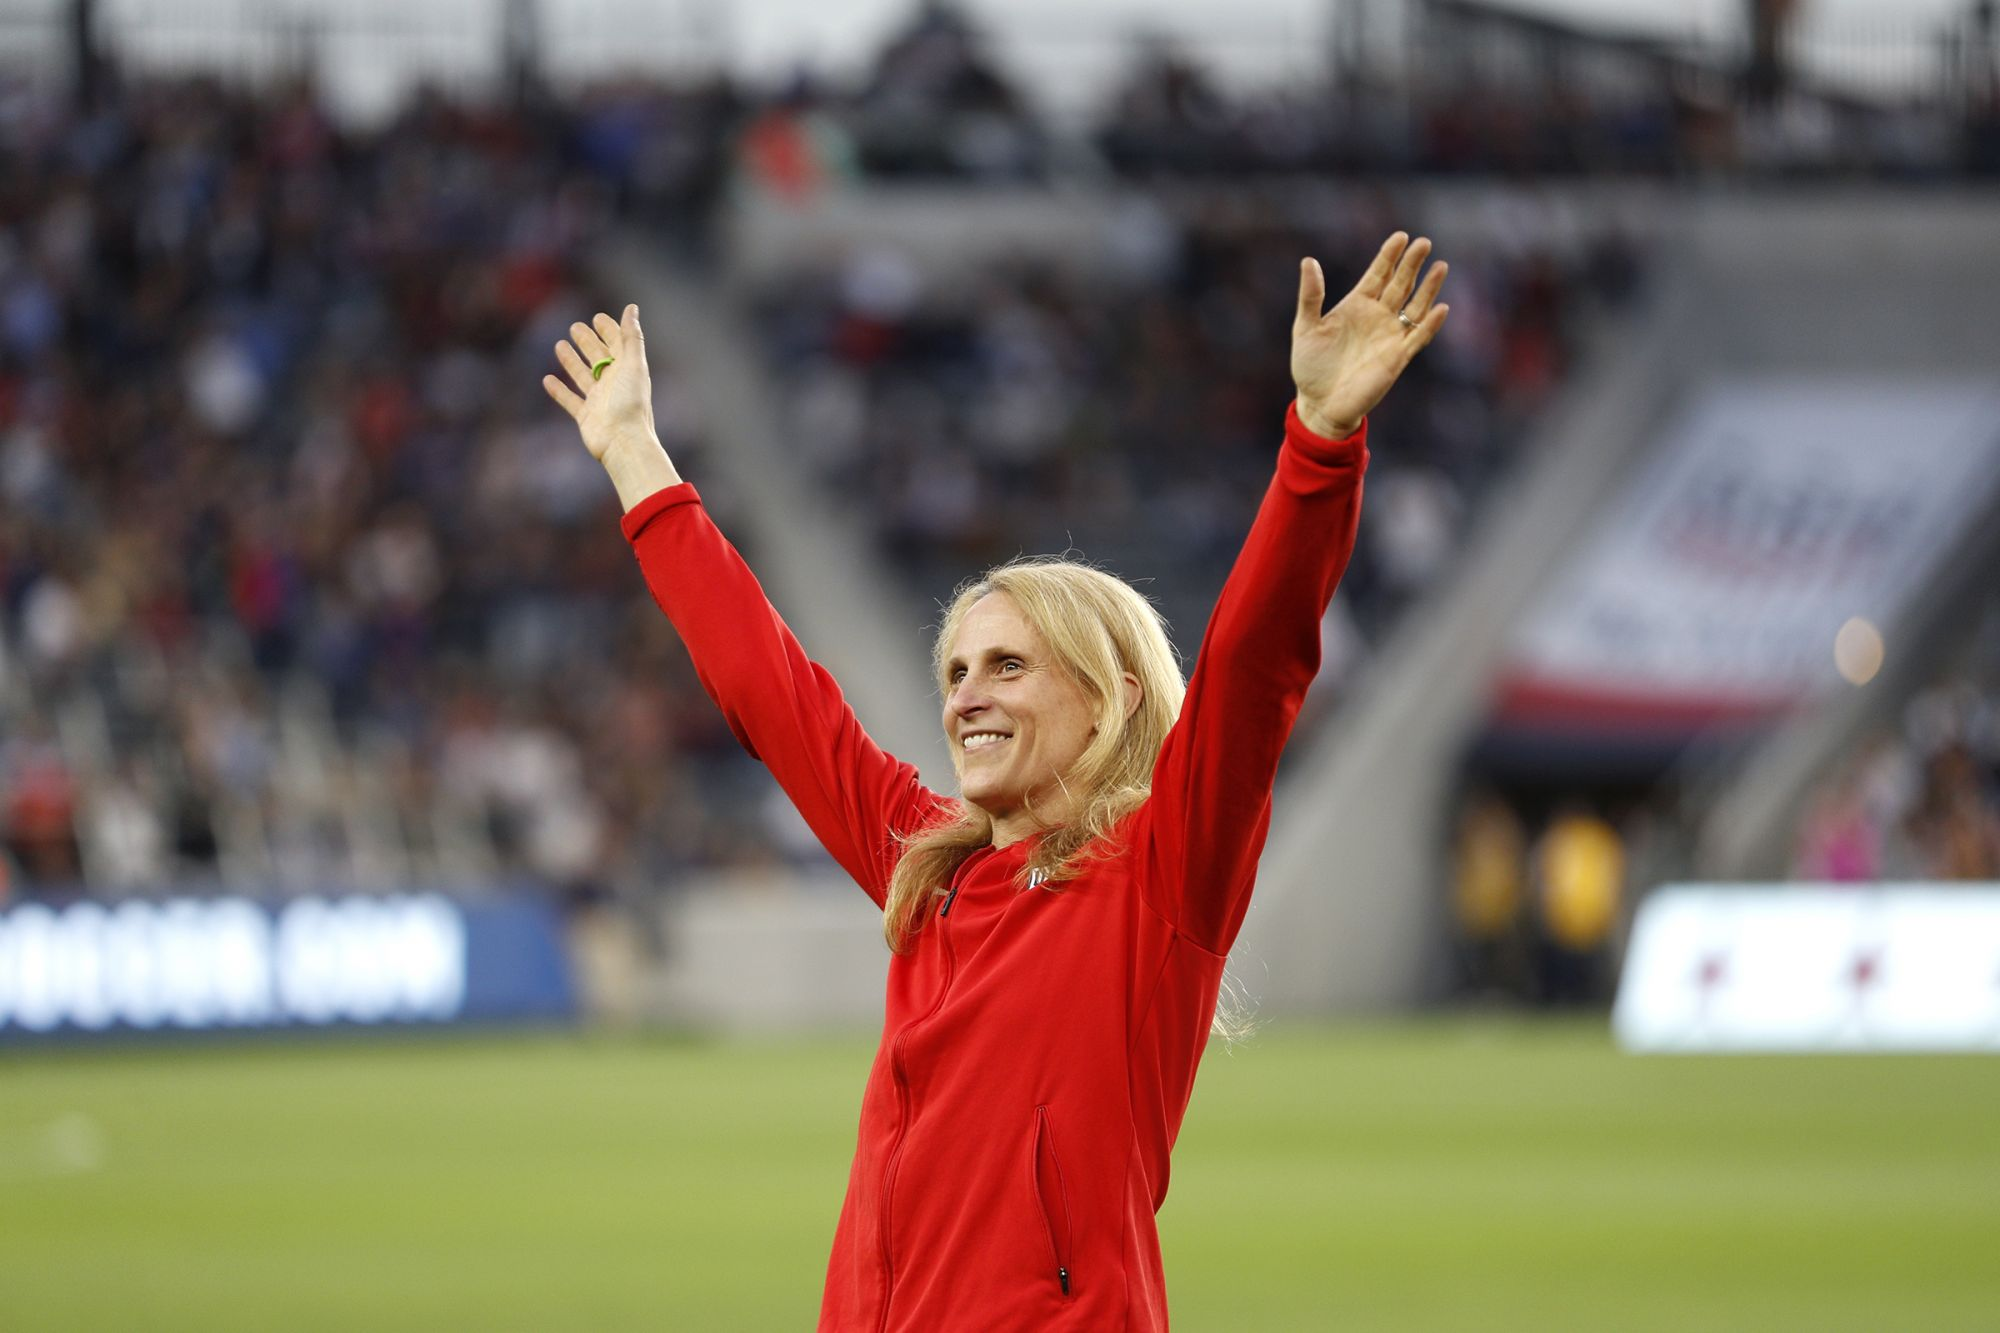 How the U.S. Women's National Soccer Team Has Maintained Its Dominance